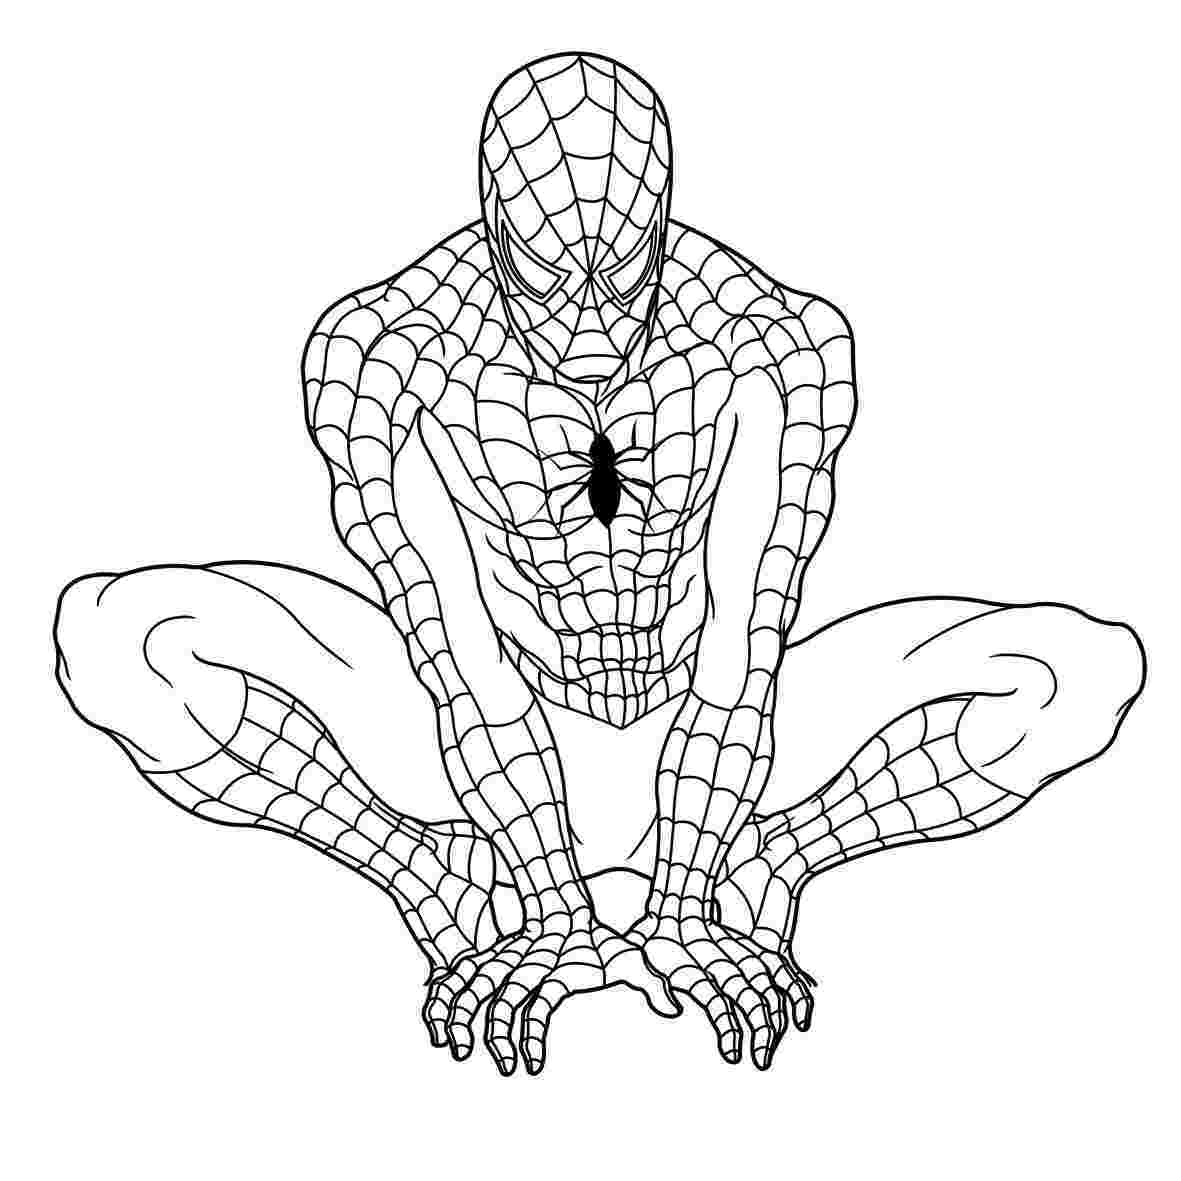 spiderman colouring pics printable spiderman coloring pages for kids cool2bkids colouring spiderman pics